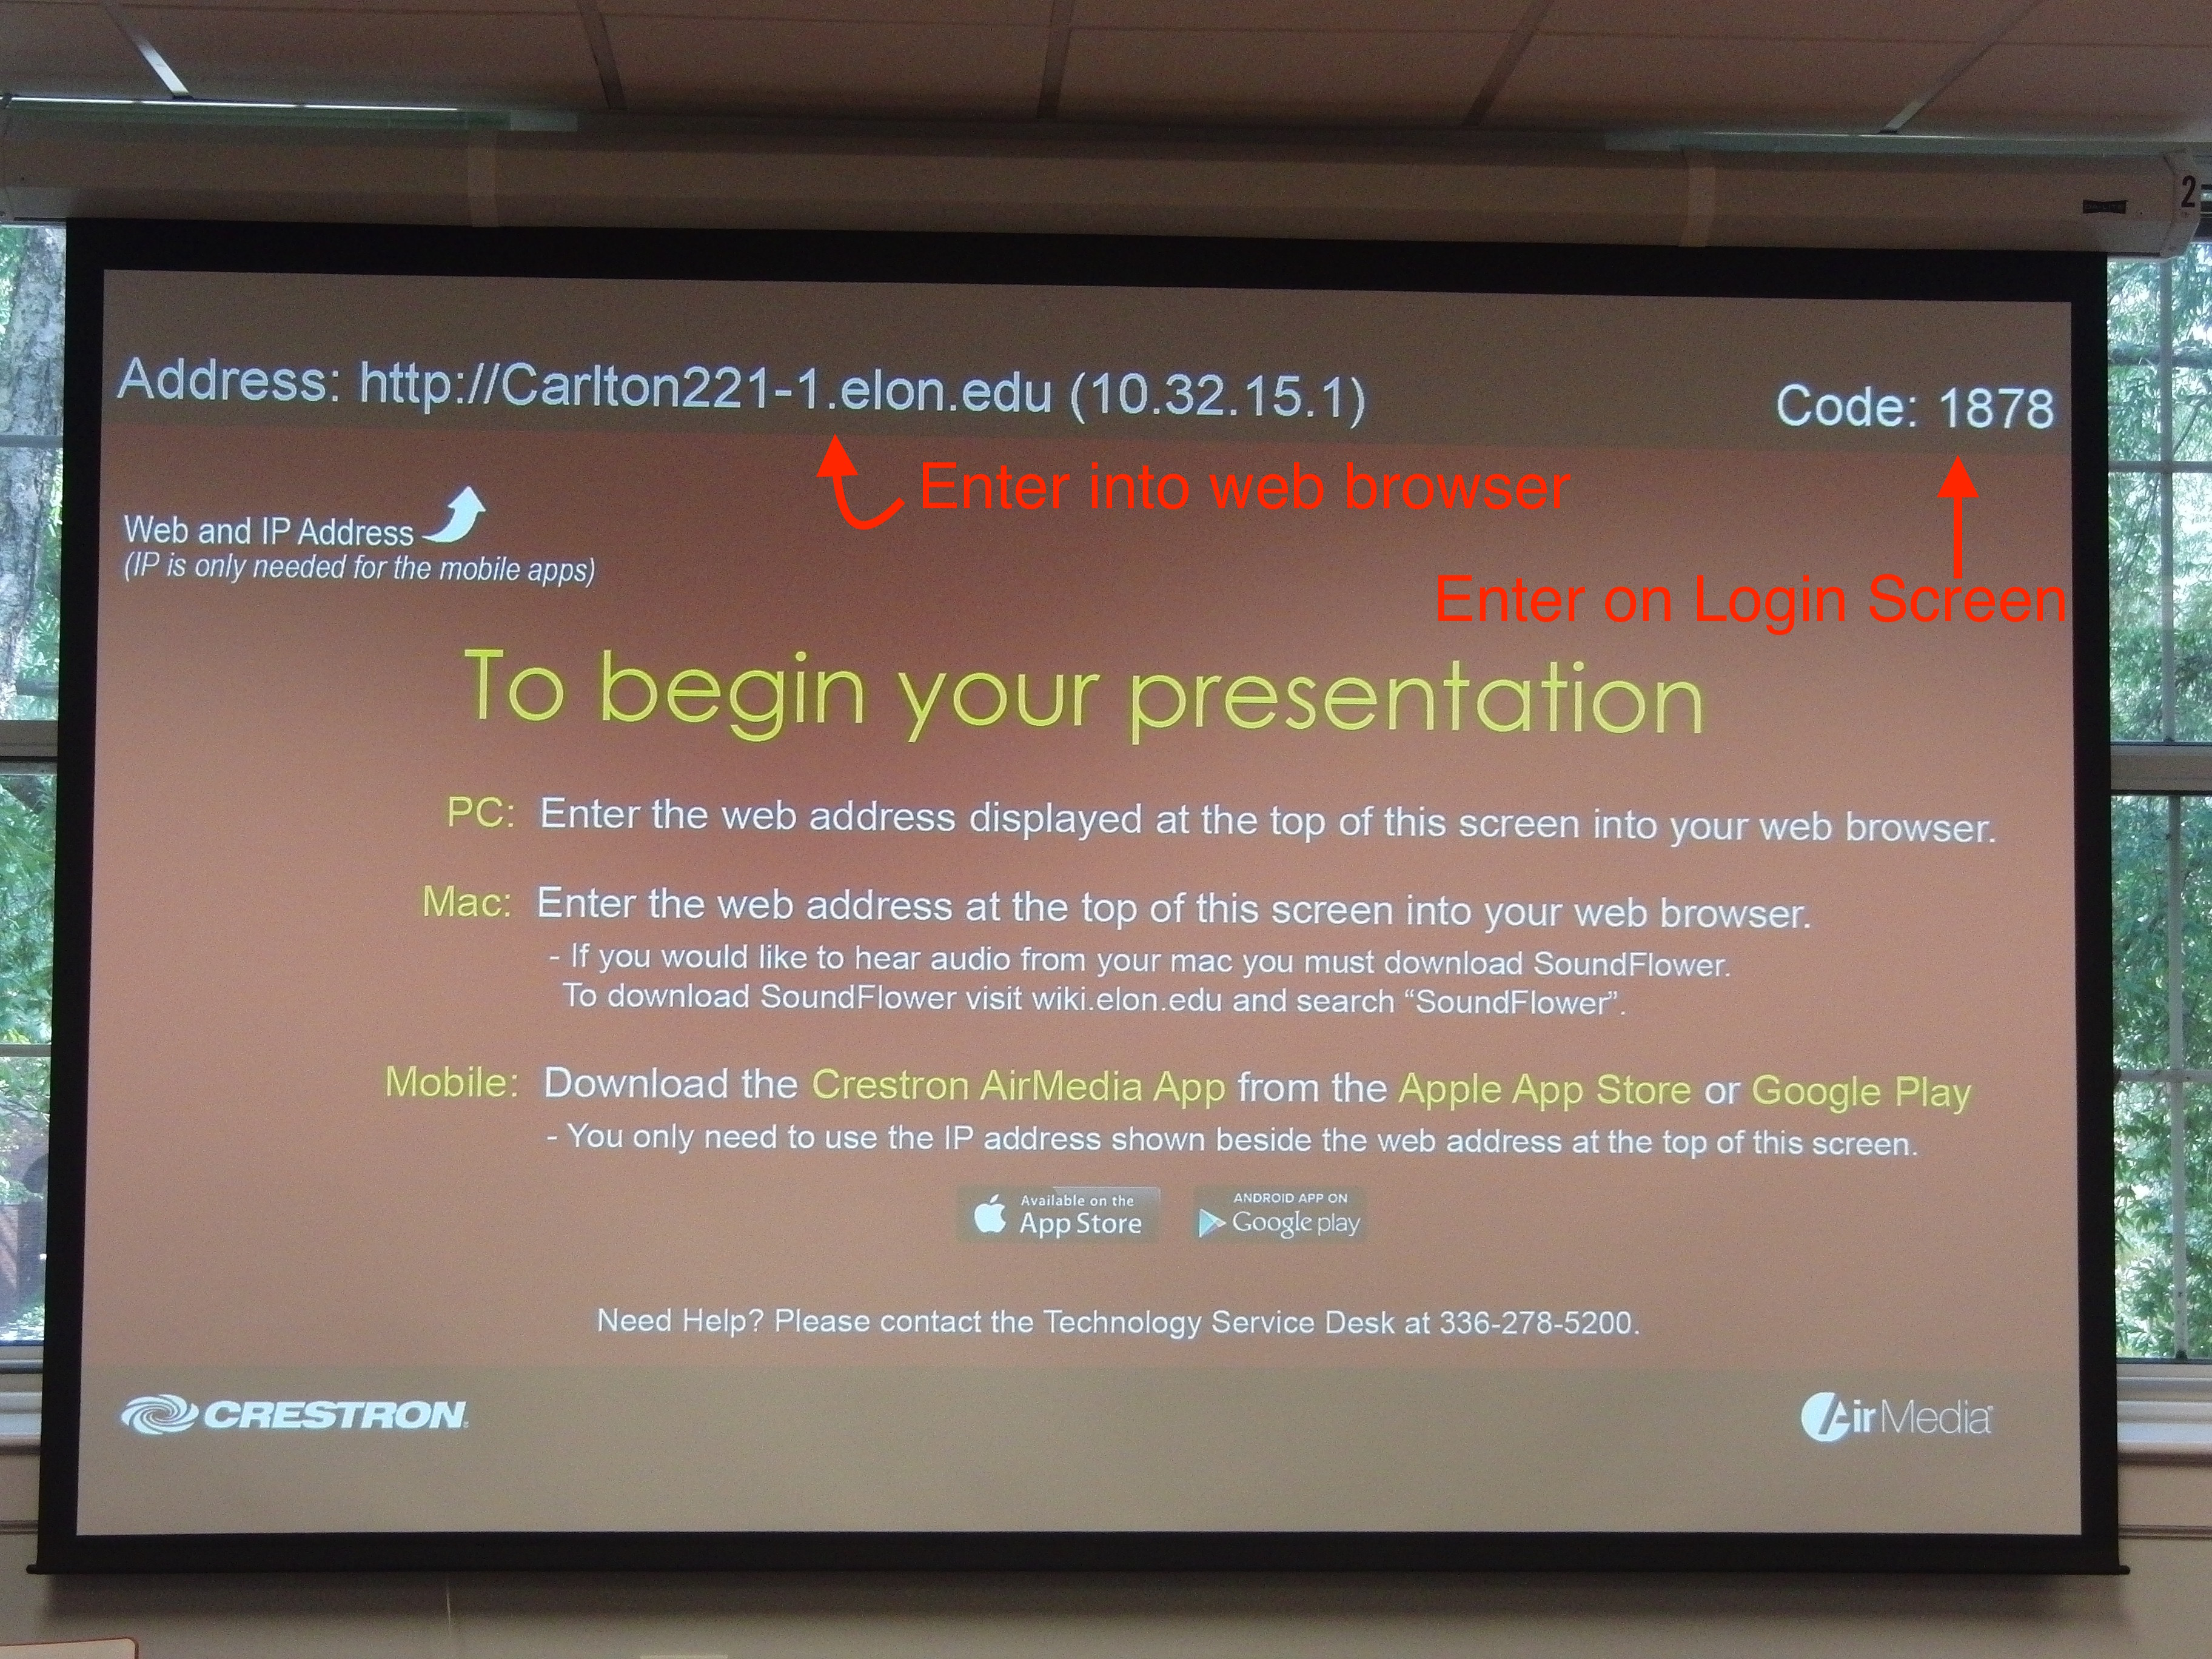 Photo of projector screen indicating browser and code information